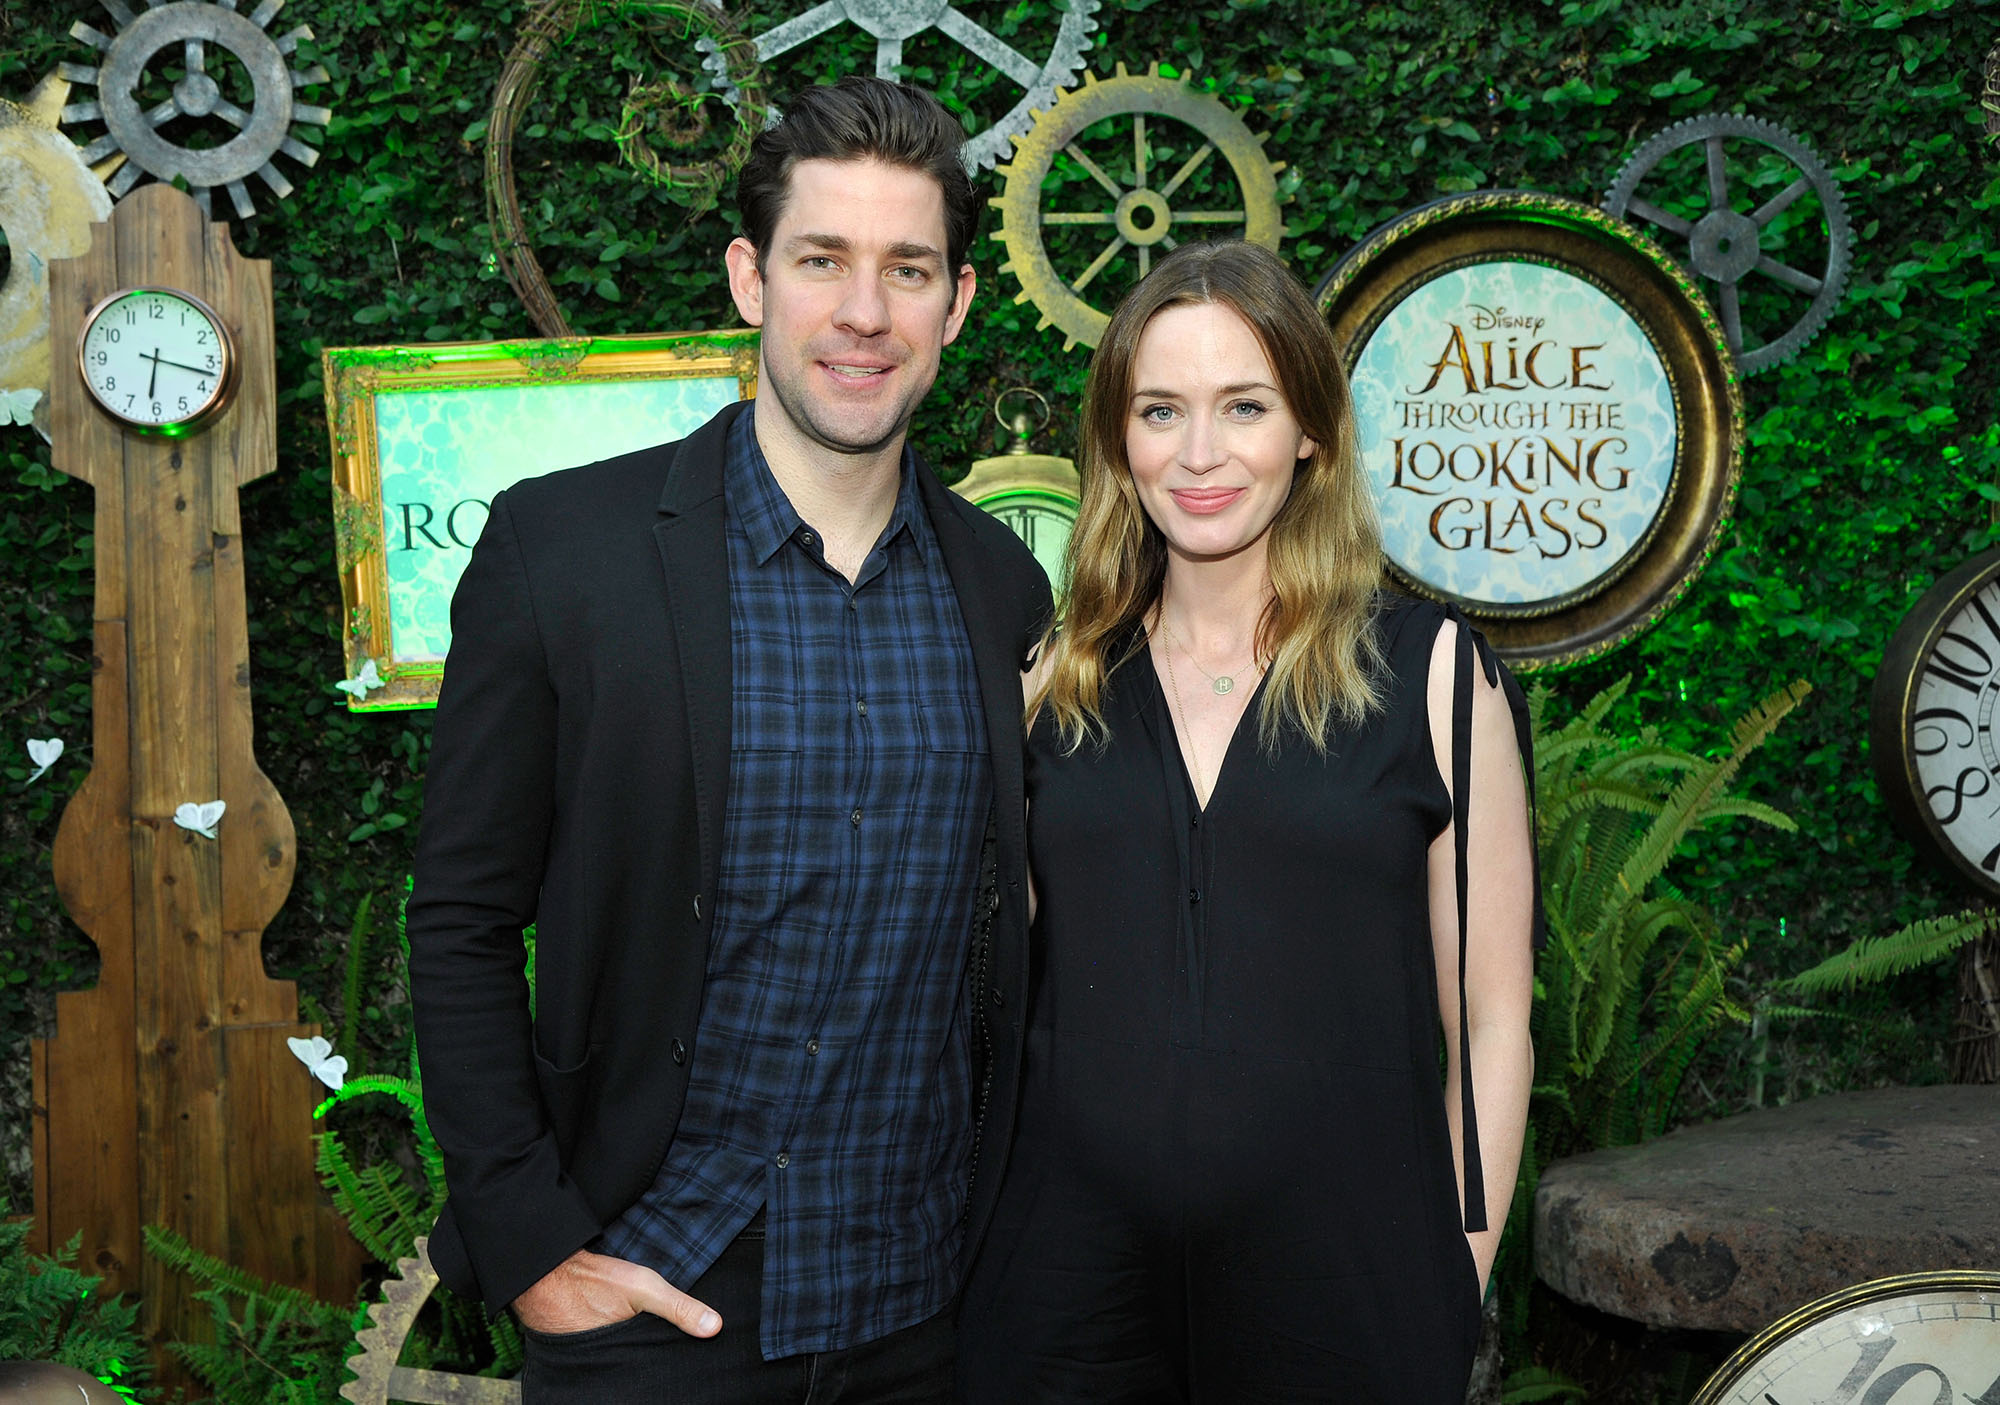 John Krasinski and Emily Blunt attend Disney's Alice Through the Looking Glass event on May 12, 2016 at Roseark in Los Angeles California.  Top designers showcased whimsical fashions, accessories and beauty collections inspired by the upcoming film.  (Photo by John Sciulli/Getty Images for Disney Consumer Products & Interactive Media)